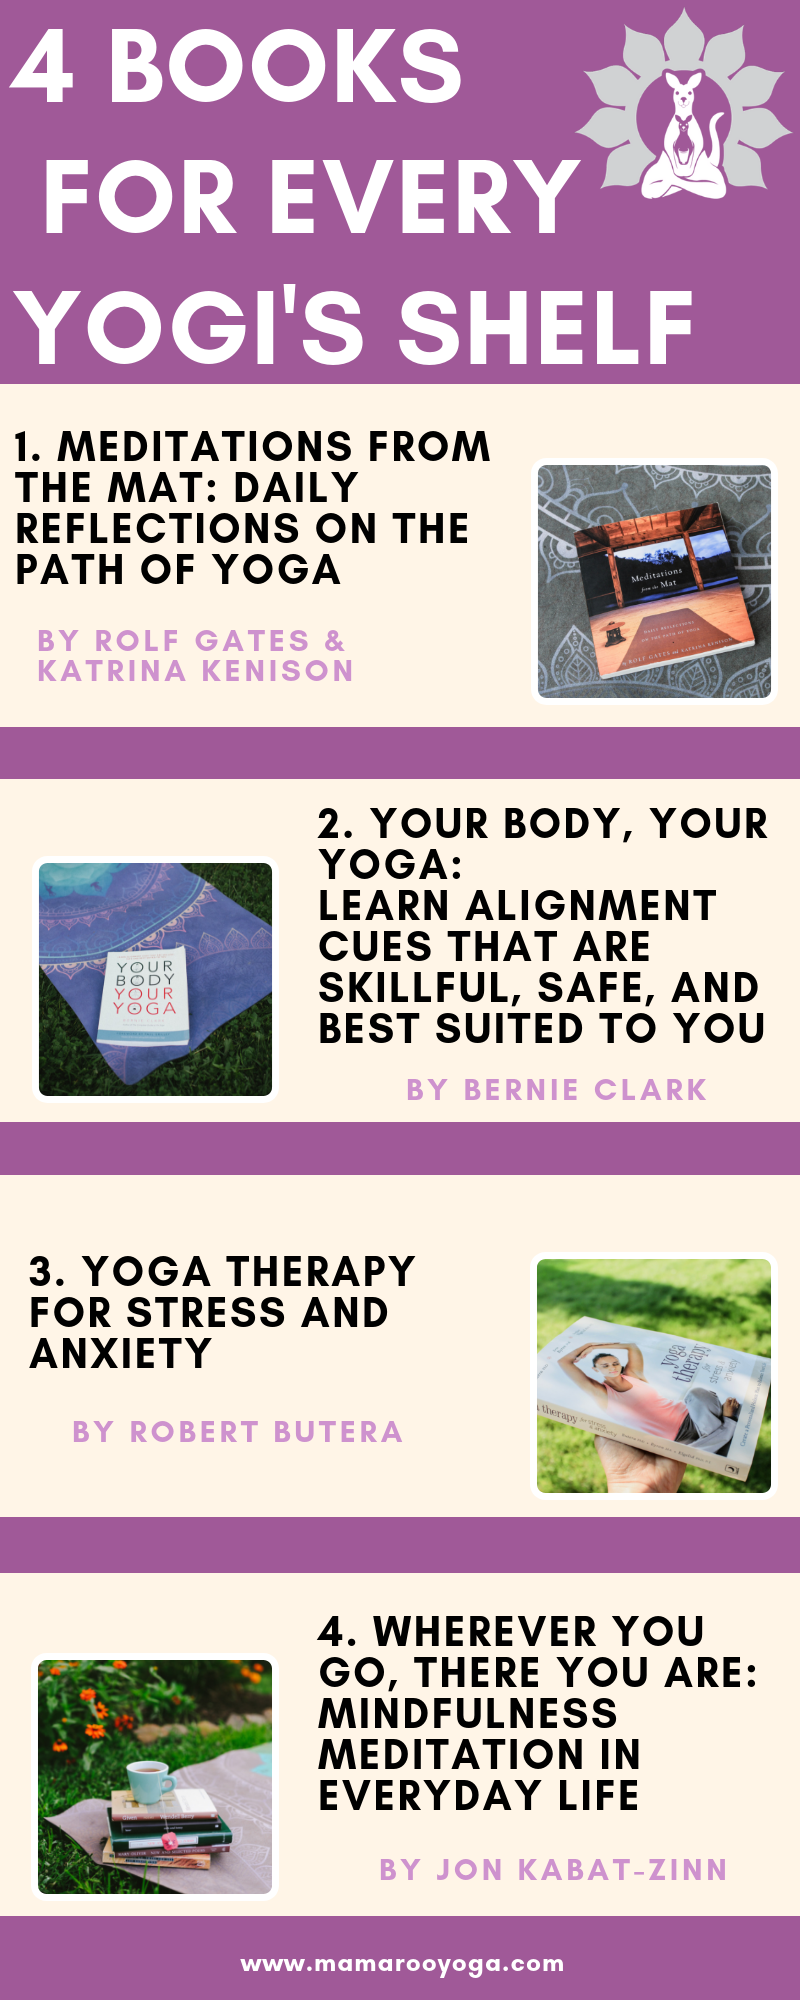 4 Books for Every Yogi's Shelf Graphic